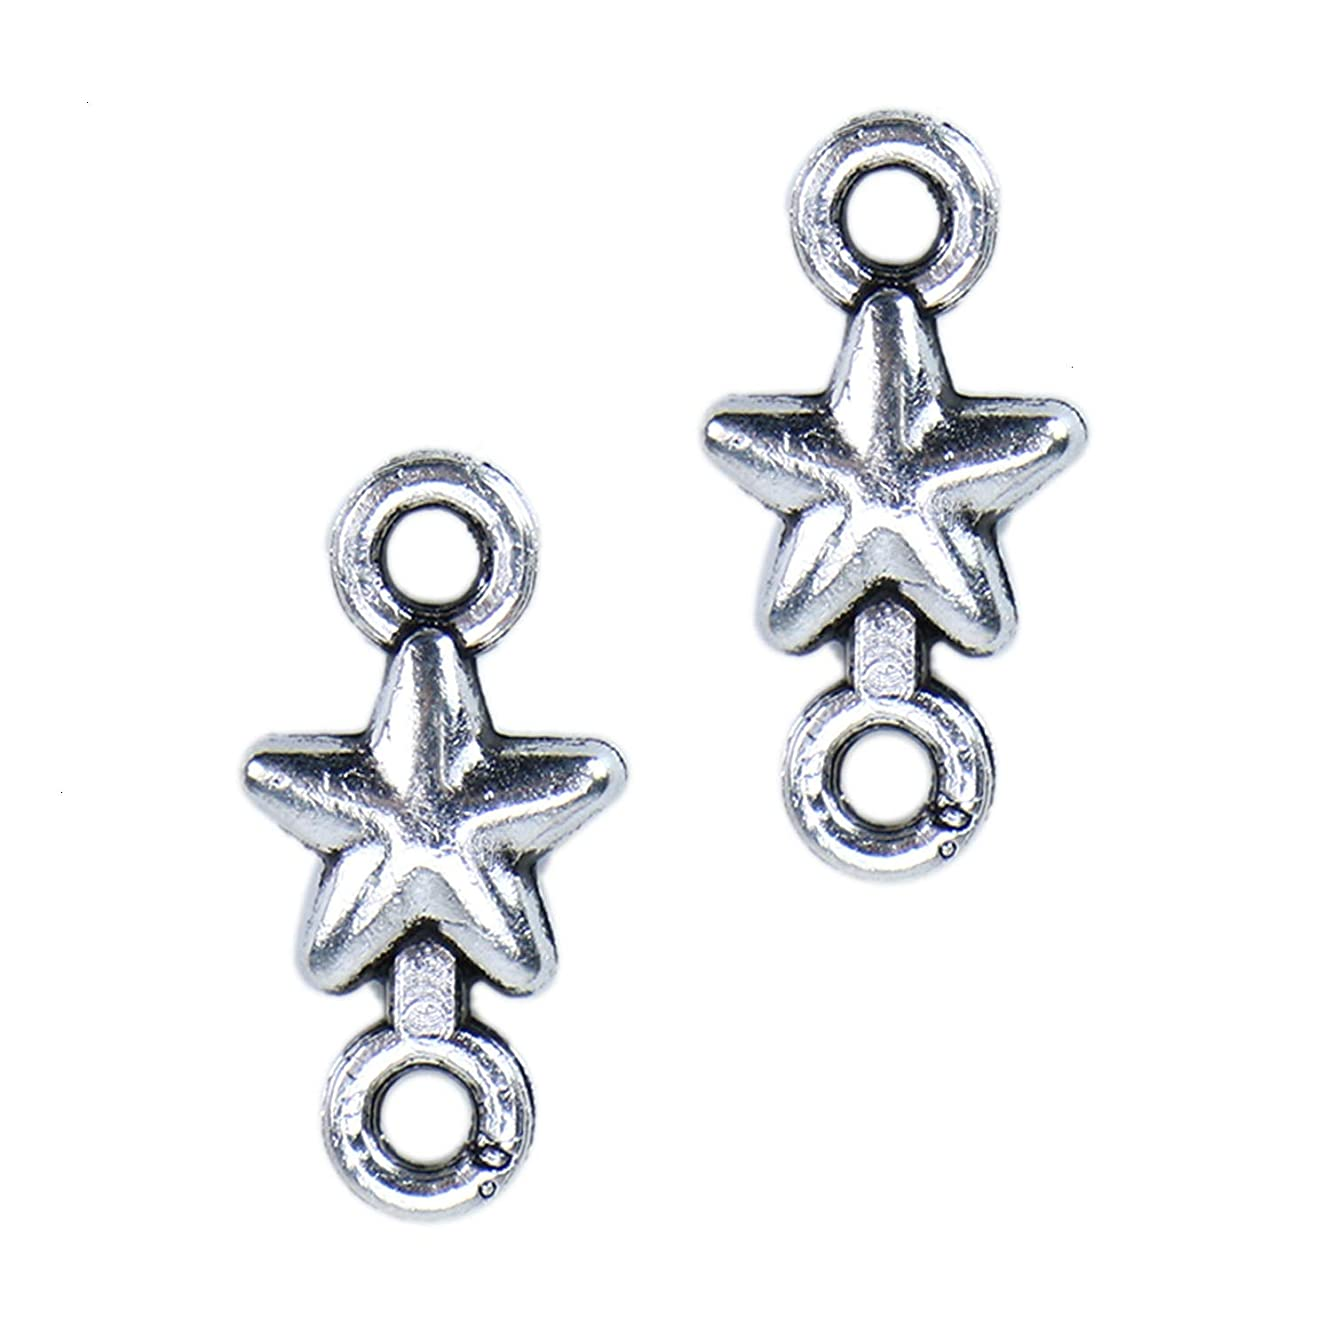 Monrocco 100 PCS 15 x 7.5mm? Antique Silver Star Connector Charms for DIY Crafting and Bracelet and Necklace Jewelry Making